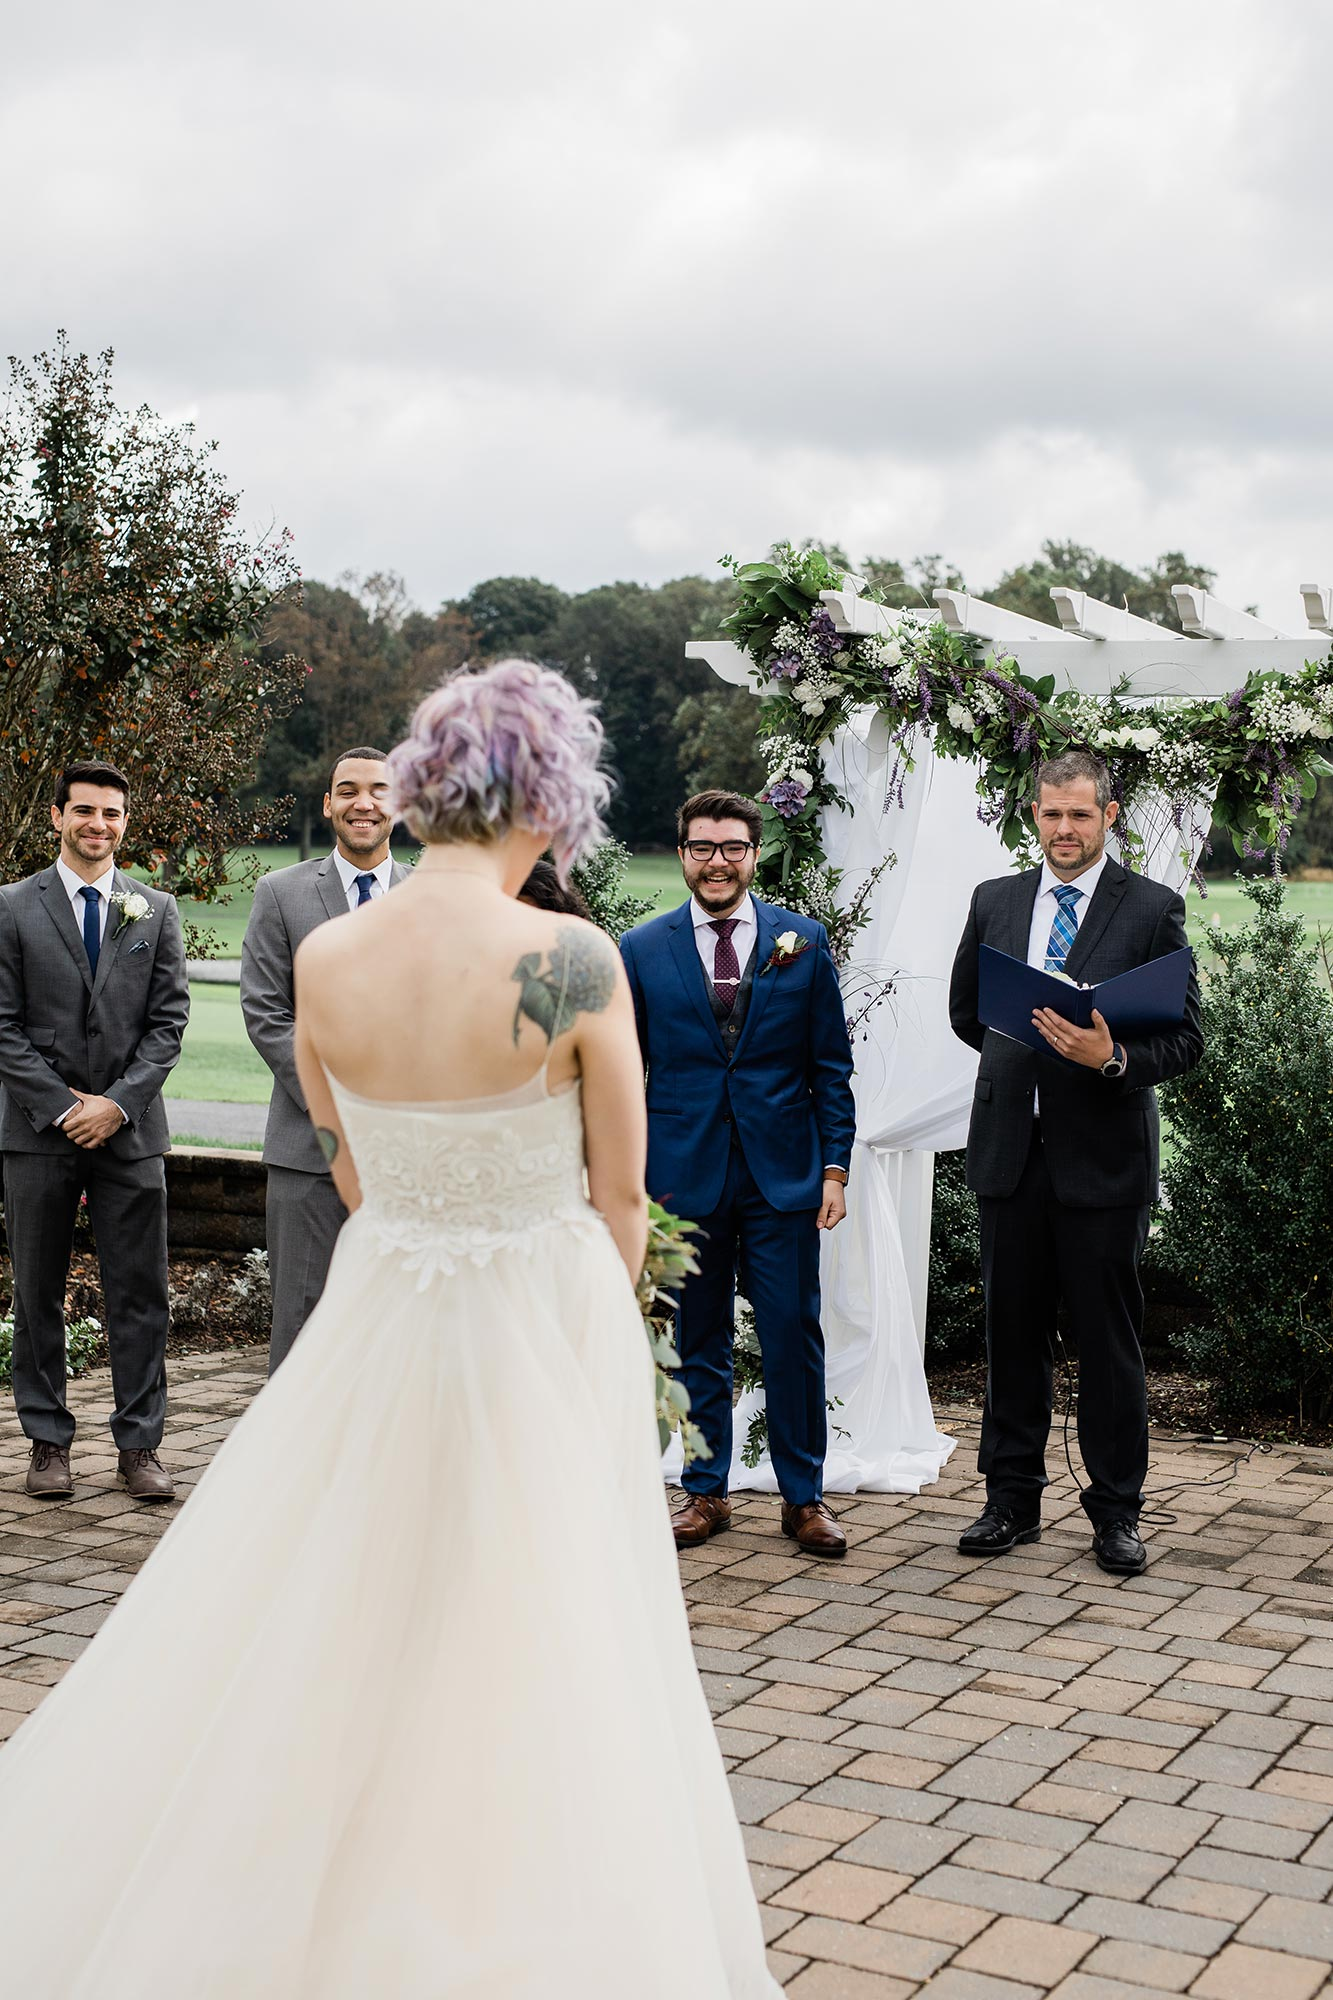 Chic Queer Wedding in West Chester Pennsylvania showing Sara walking down aisle Judson Rappaport Photography